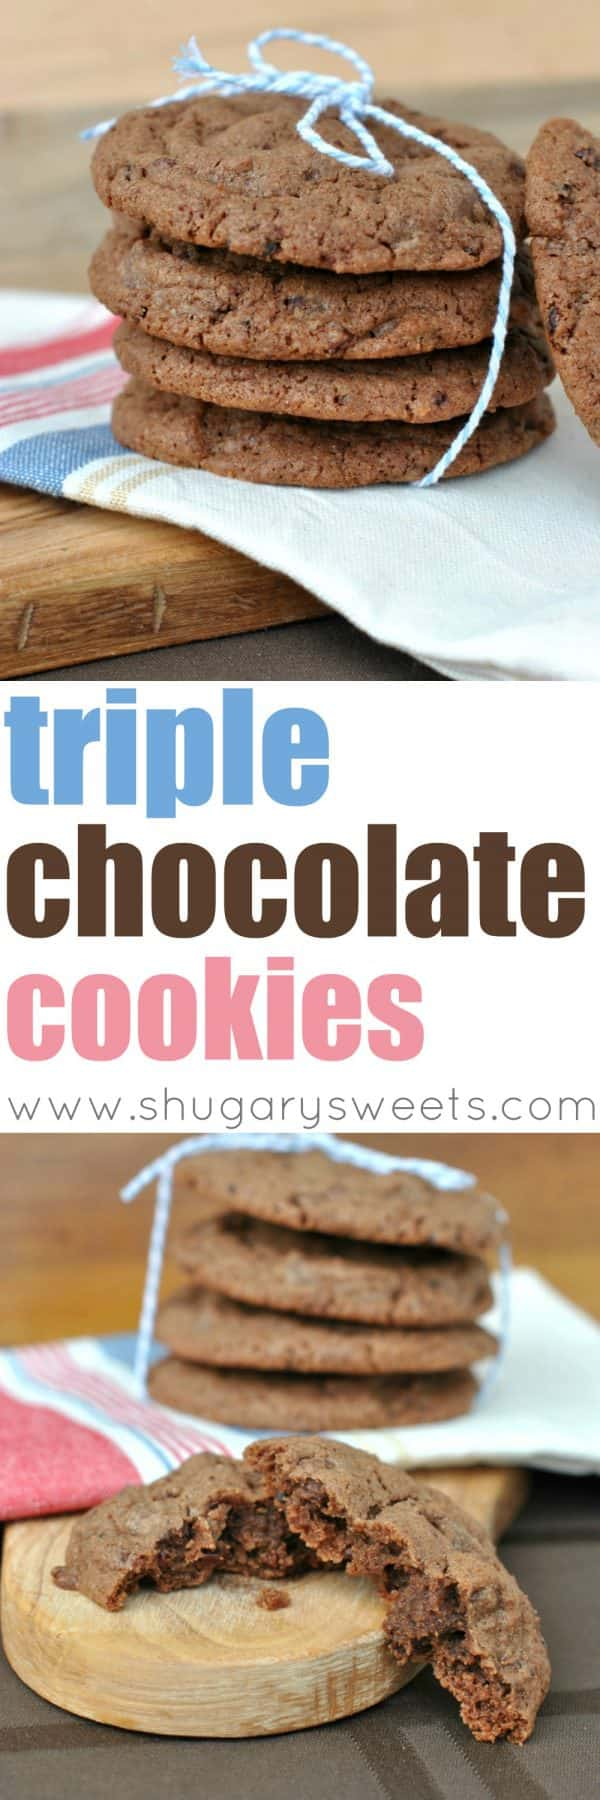 Chewy Chocolate Cookies filled with Chocolate Chips and Cocoa Nibs. The ultimate chocolate experience!